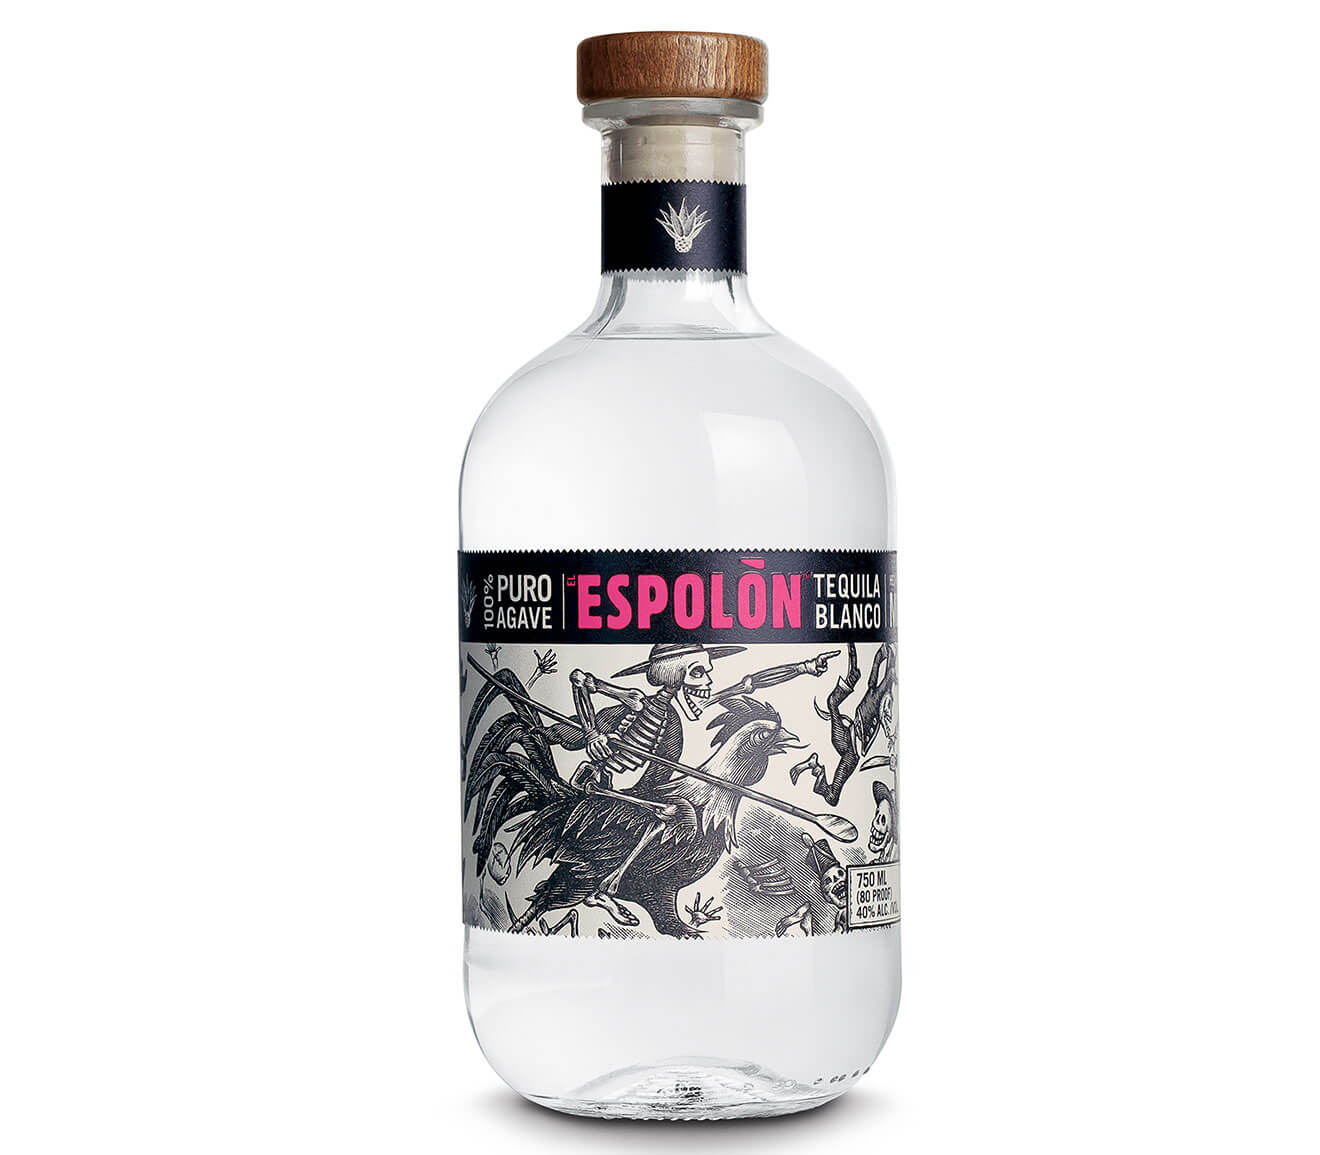 Espolòn Blanco, bottle on white